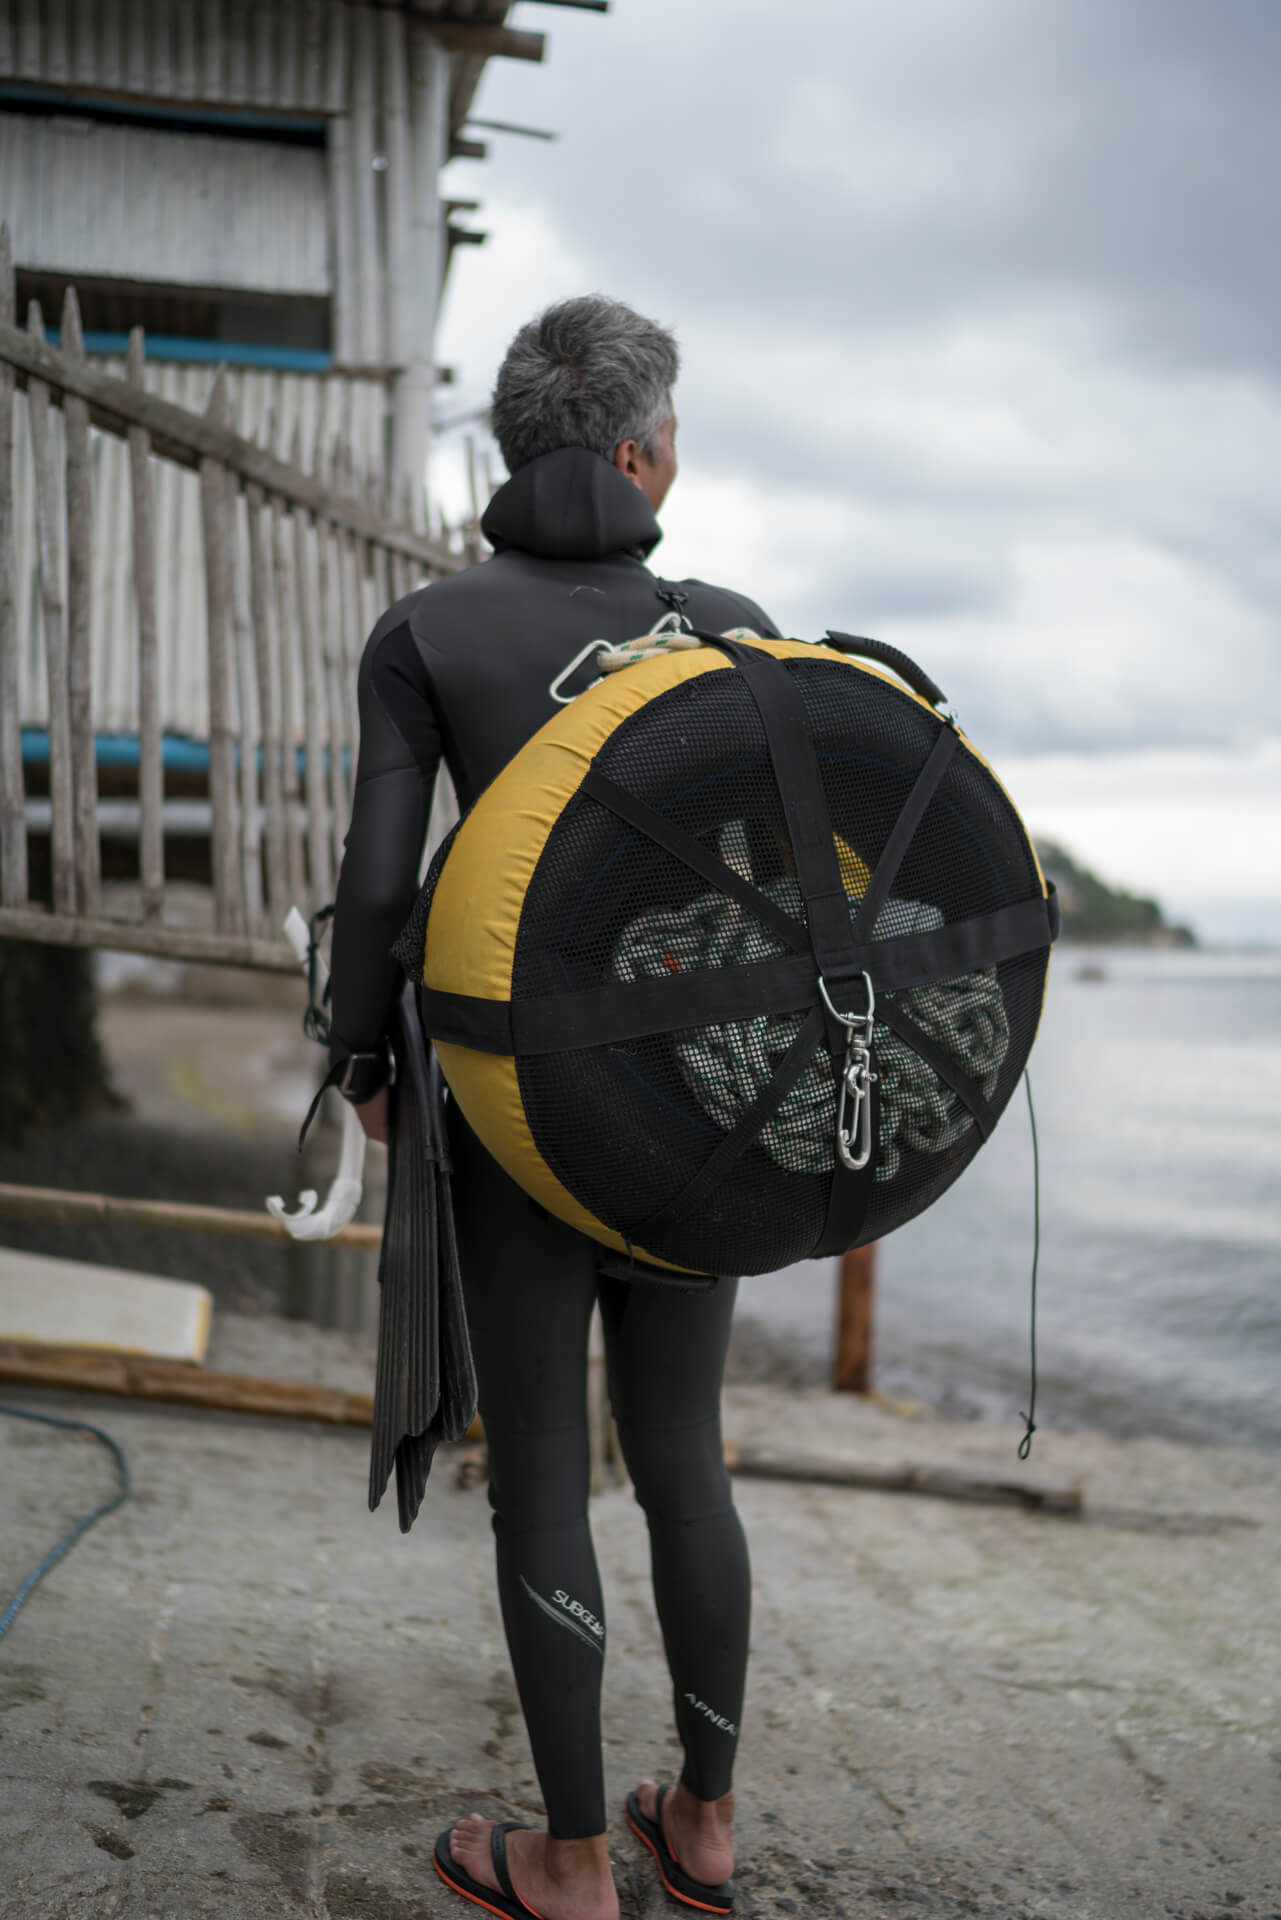 diver carrying gear on shore